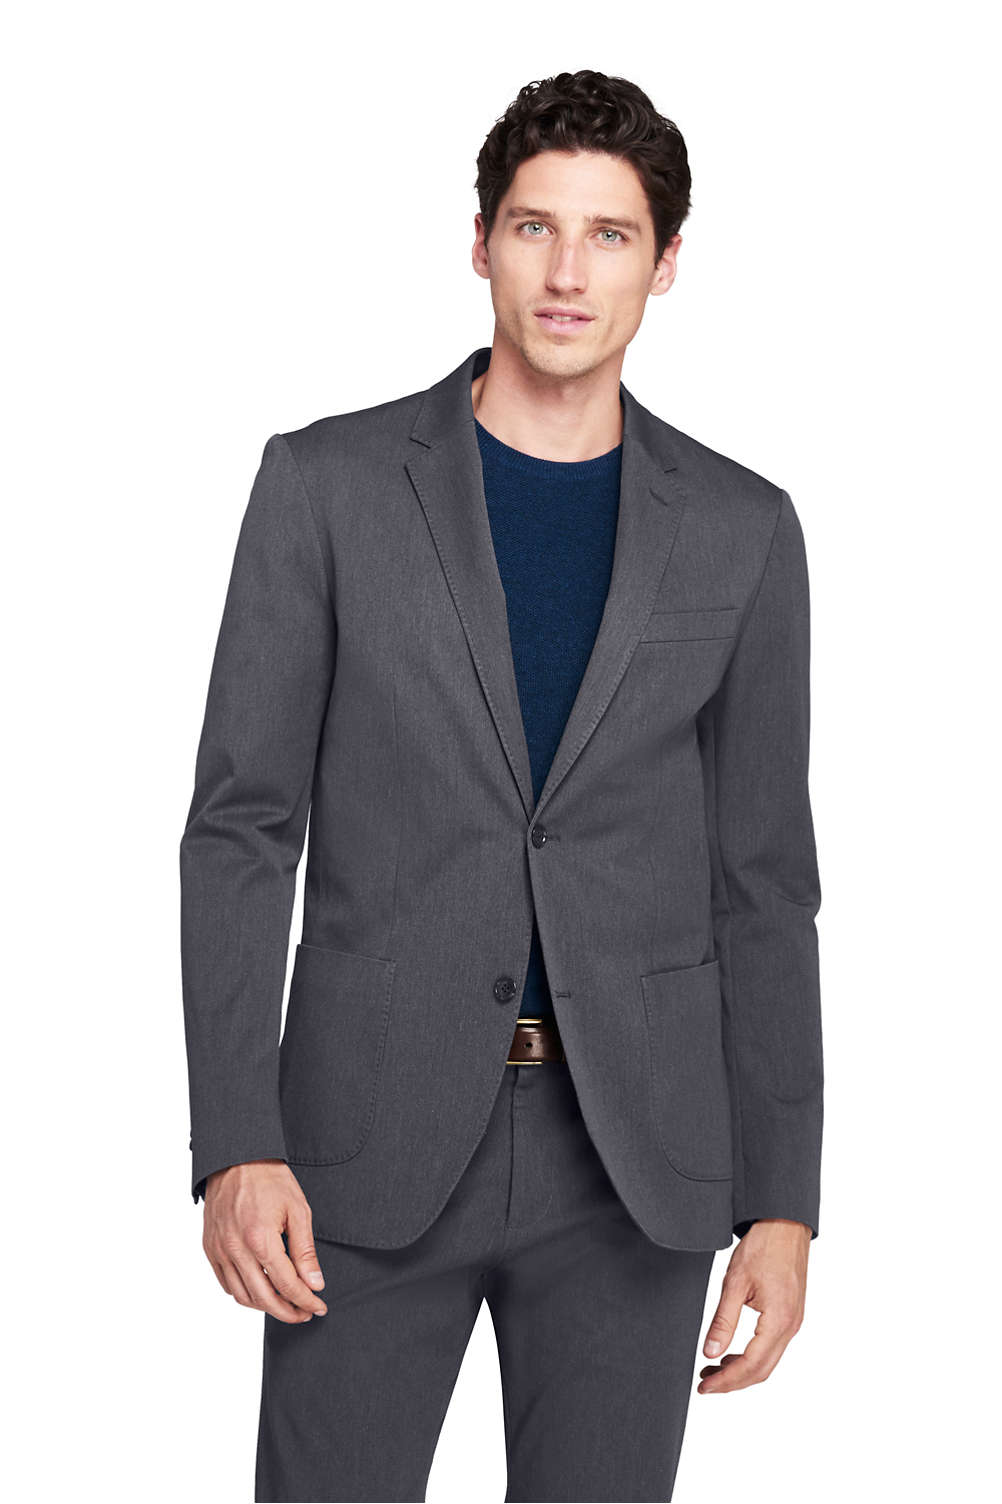 3ed8194caf02 Men's Tailored Fit Comfort-First Travel Blazer from Lands' End